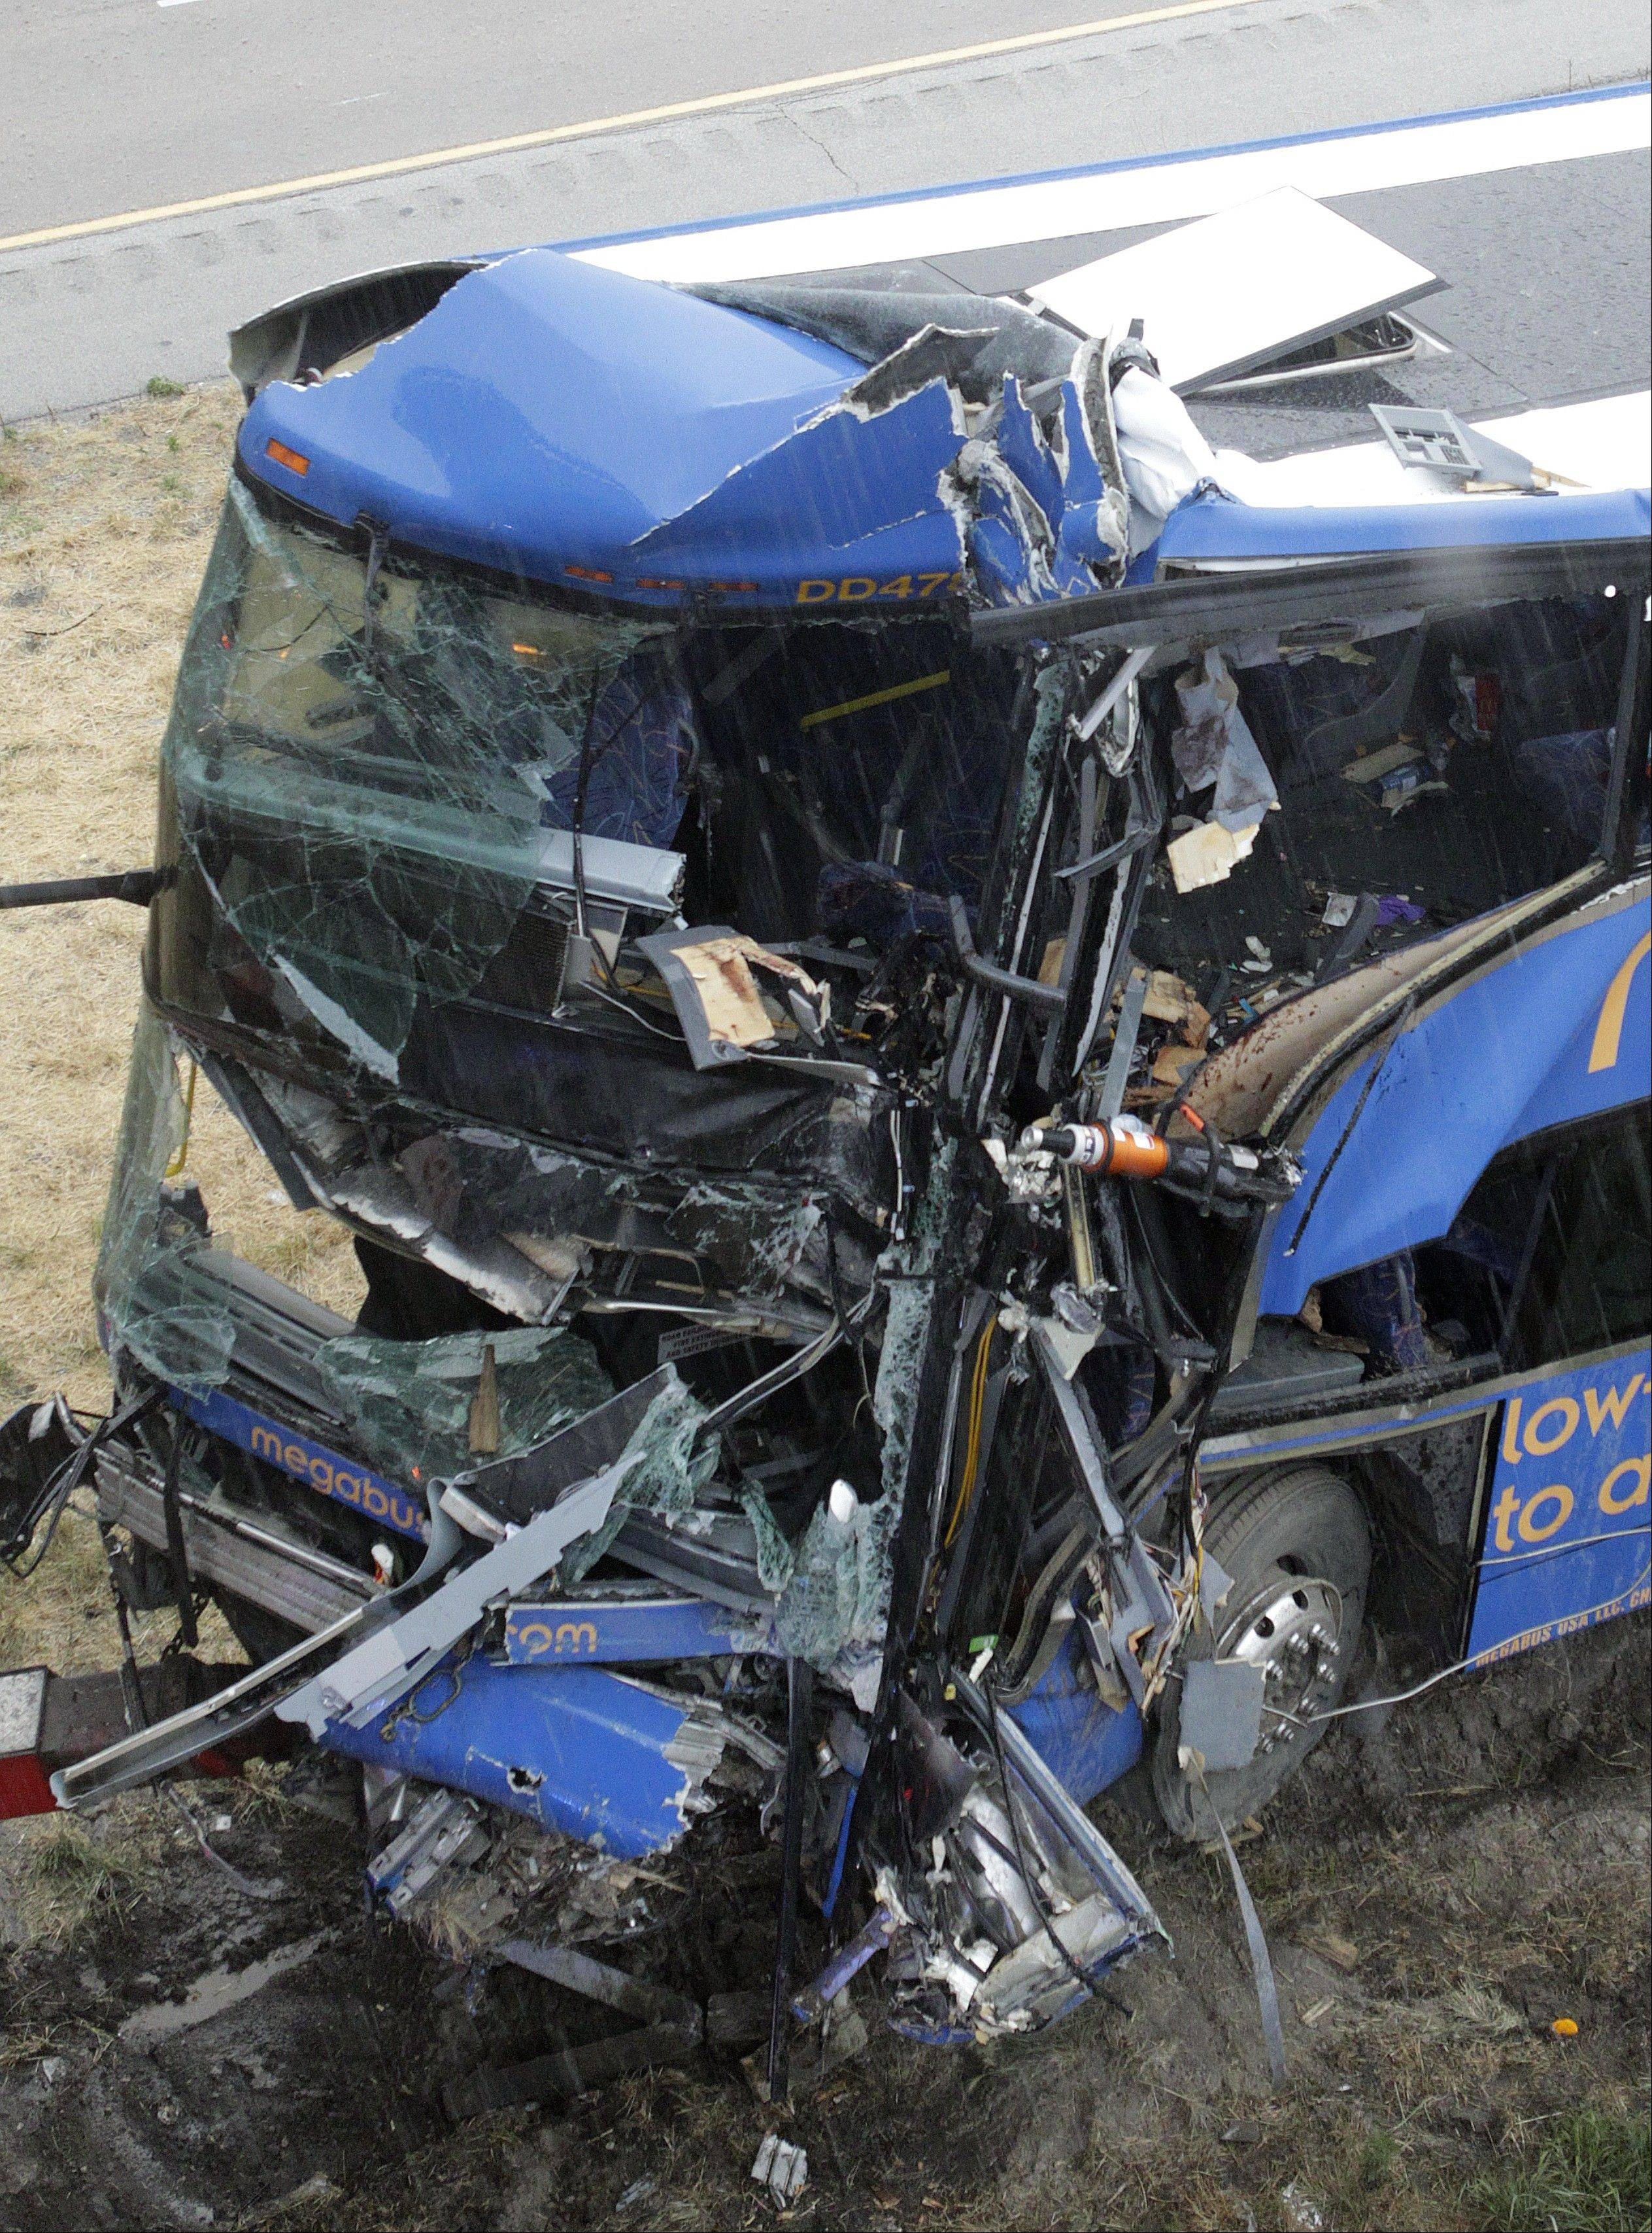 The wreckage of a Megabus is removed from the bridge support pilar that it slammed into after blowing a tire, Thursday, Aug. 2, 2012 in Litchfield, Ill. Illinois State Police Trooper Doug Francis said at least one person was killed in the afternoon wreck which was traveling from Chicago to Kansas City. He didn't immediately have other details about the death.